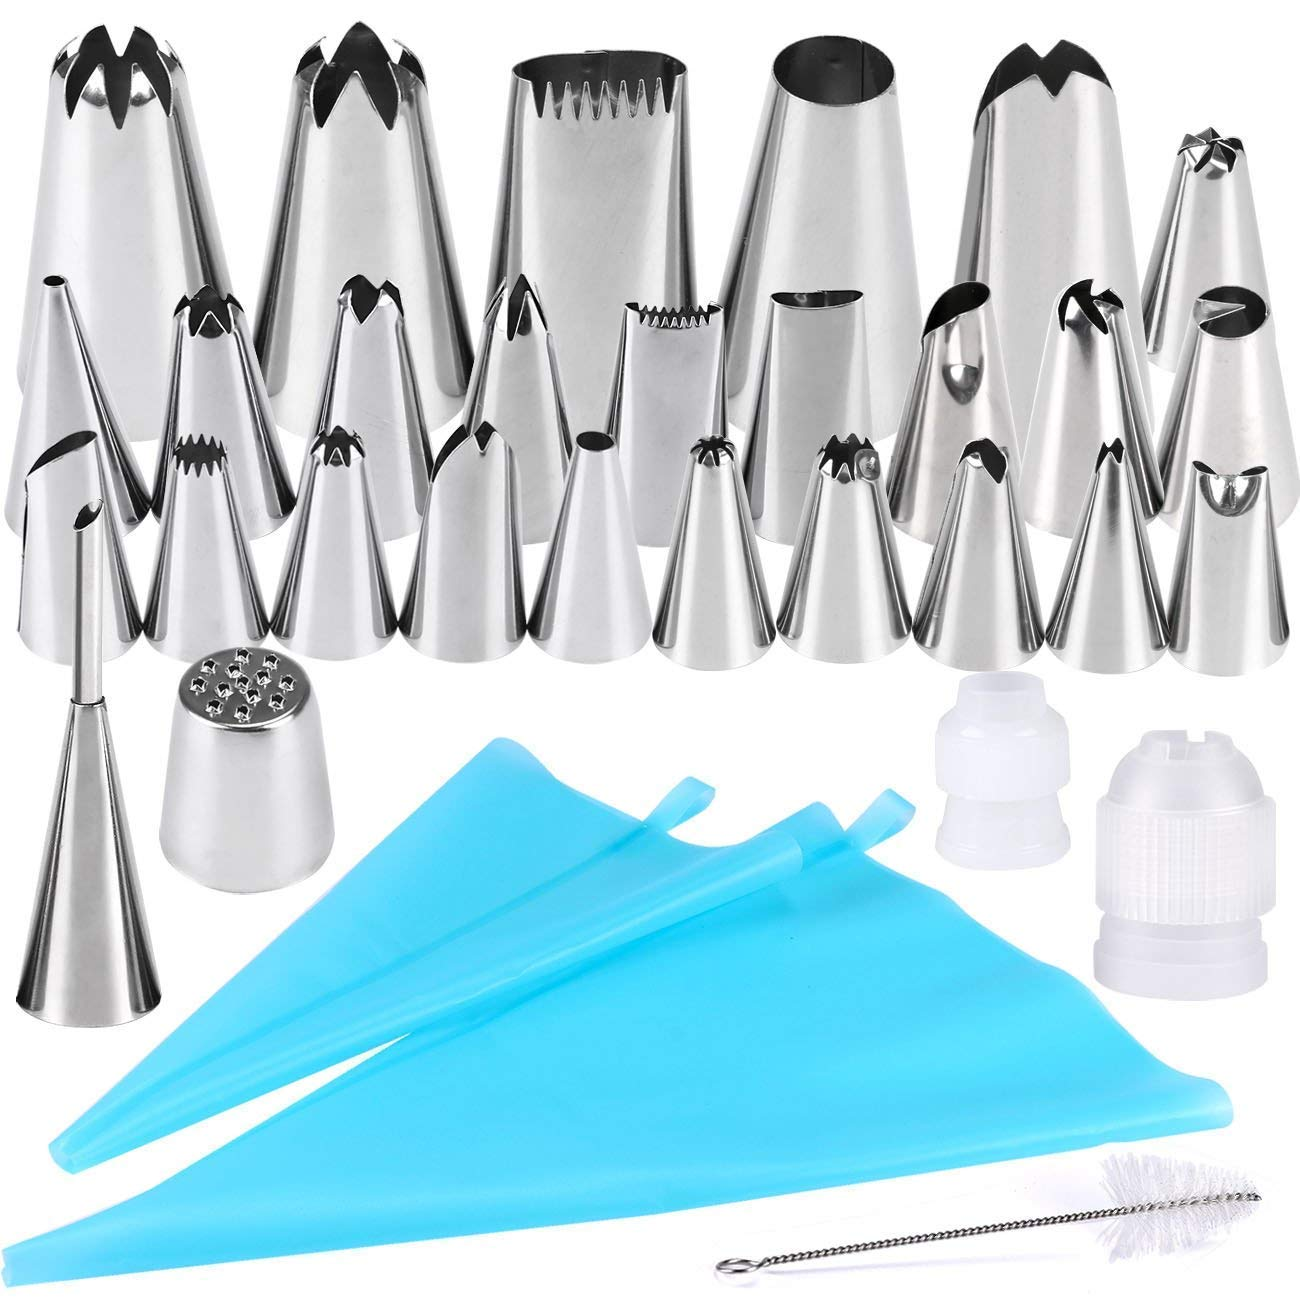 Cake Decorating Set, Gyvazla 32pcs Icing Piping Tips Set, Including 20 Small Piping Tips/ 5 Large Tips/ 1 grass Tip/ 1 Puffs Tip/ 2 Couplers/ 1 Clean Brush/ 2 Recyclable Piping Bags